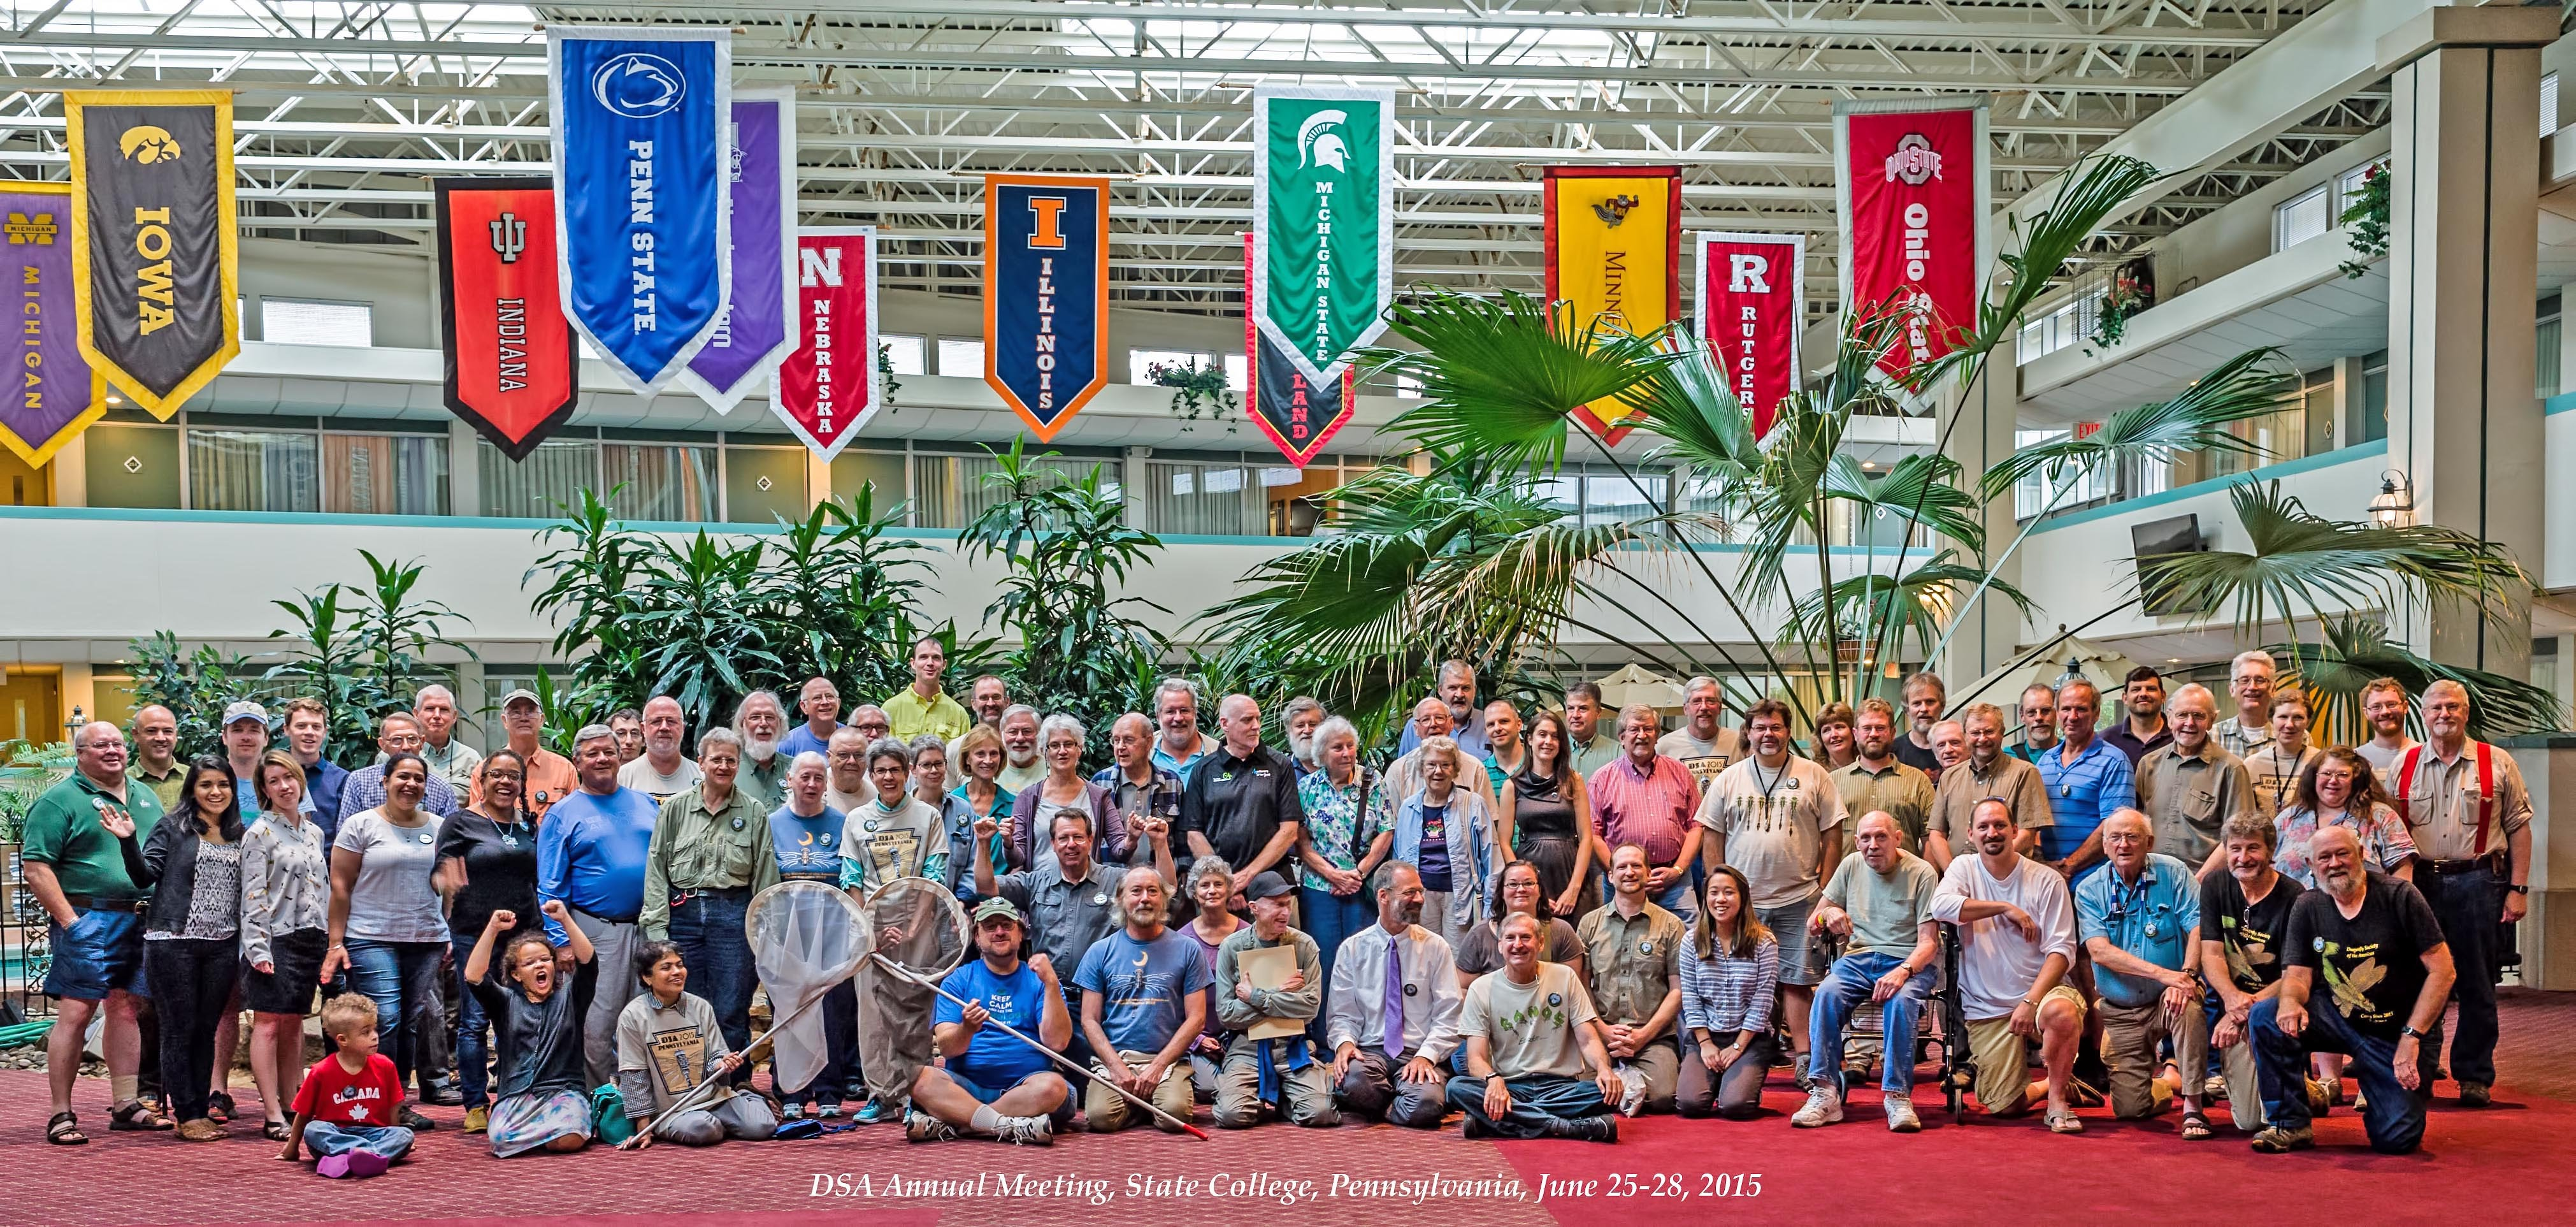 Group Photo - Dragonfly Society Meetings